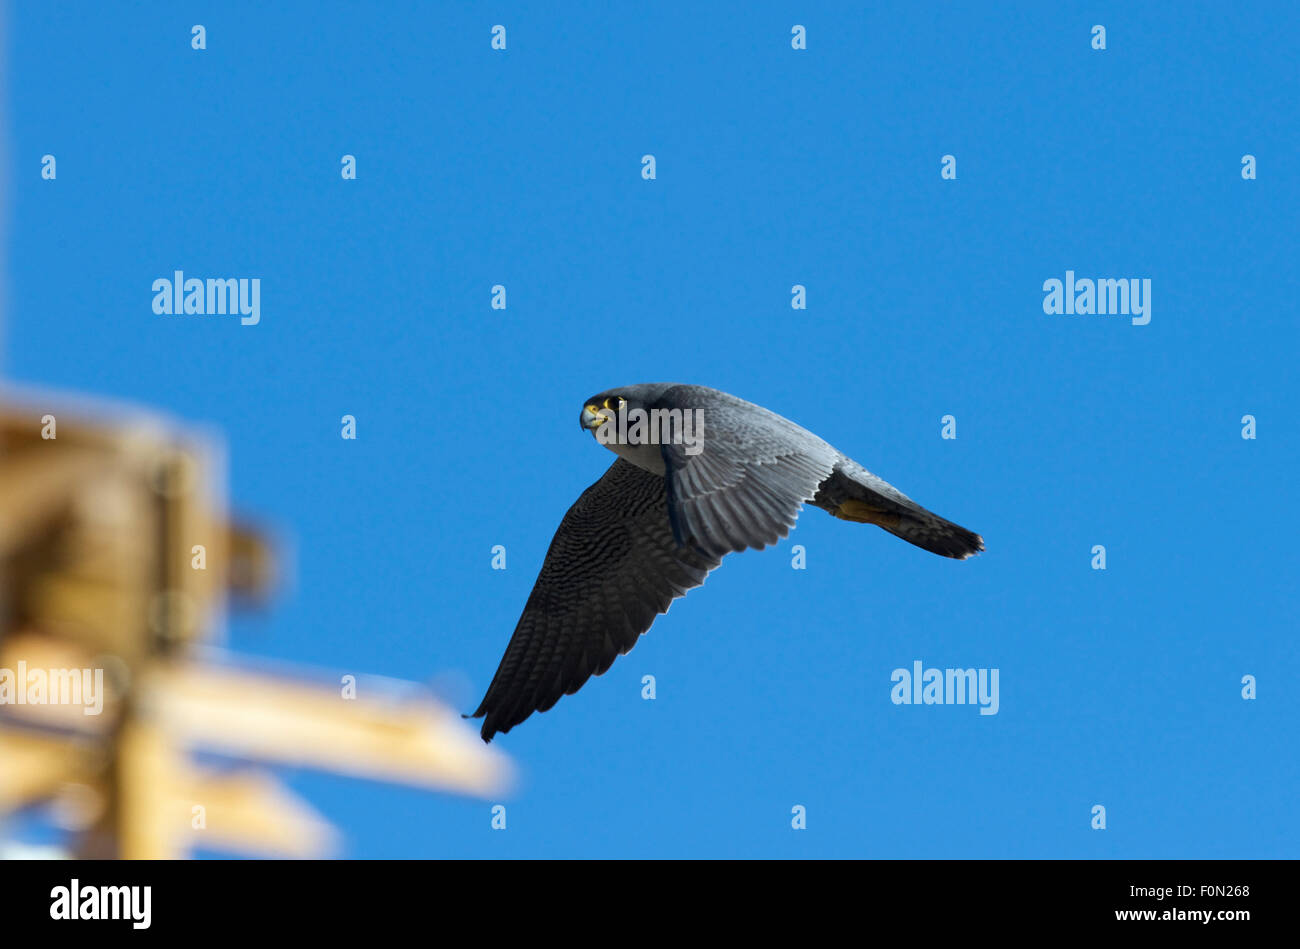 Peregrine falcon (Falco peregrinus) in flight, Barcelona, Spain, May 2009 - Stock Image